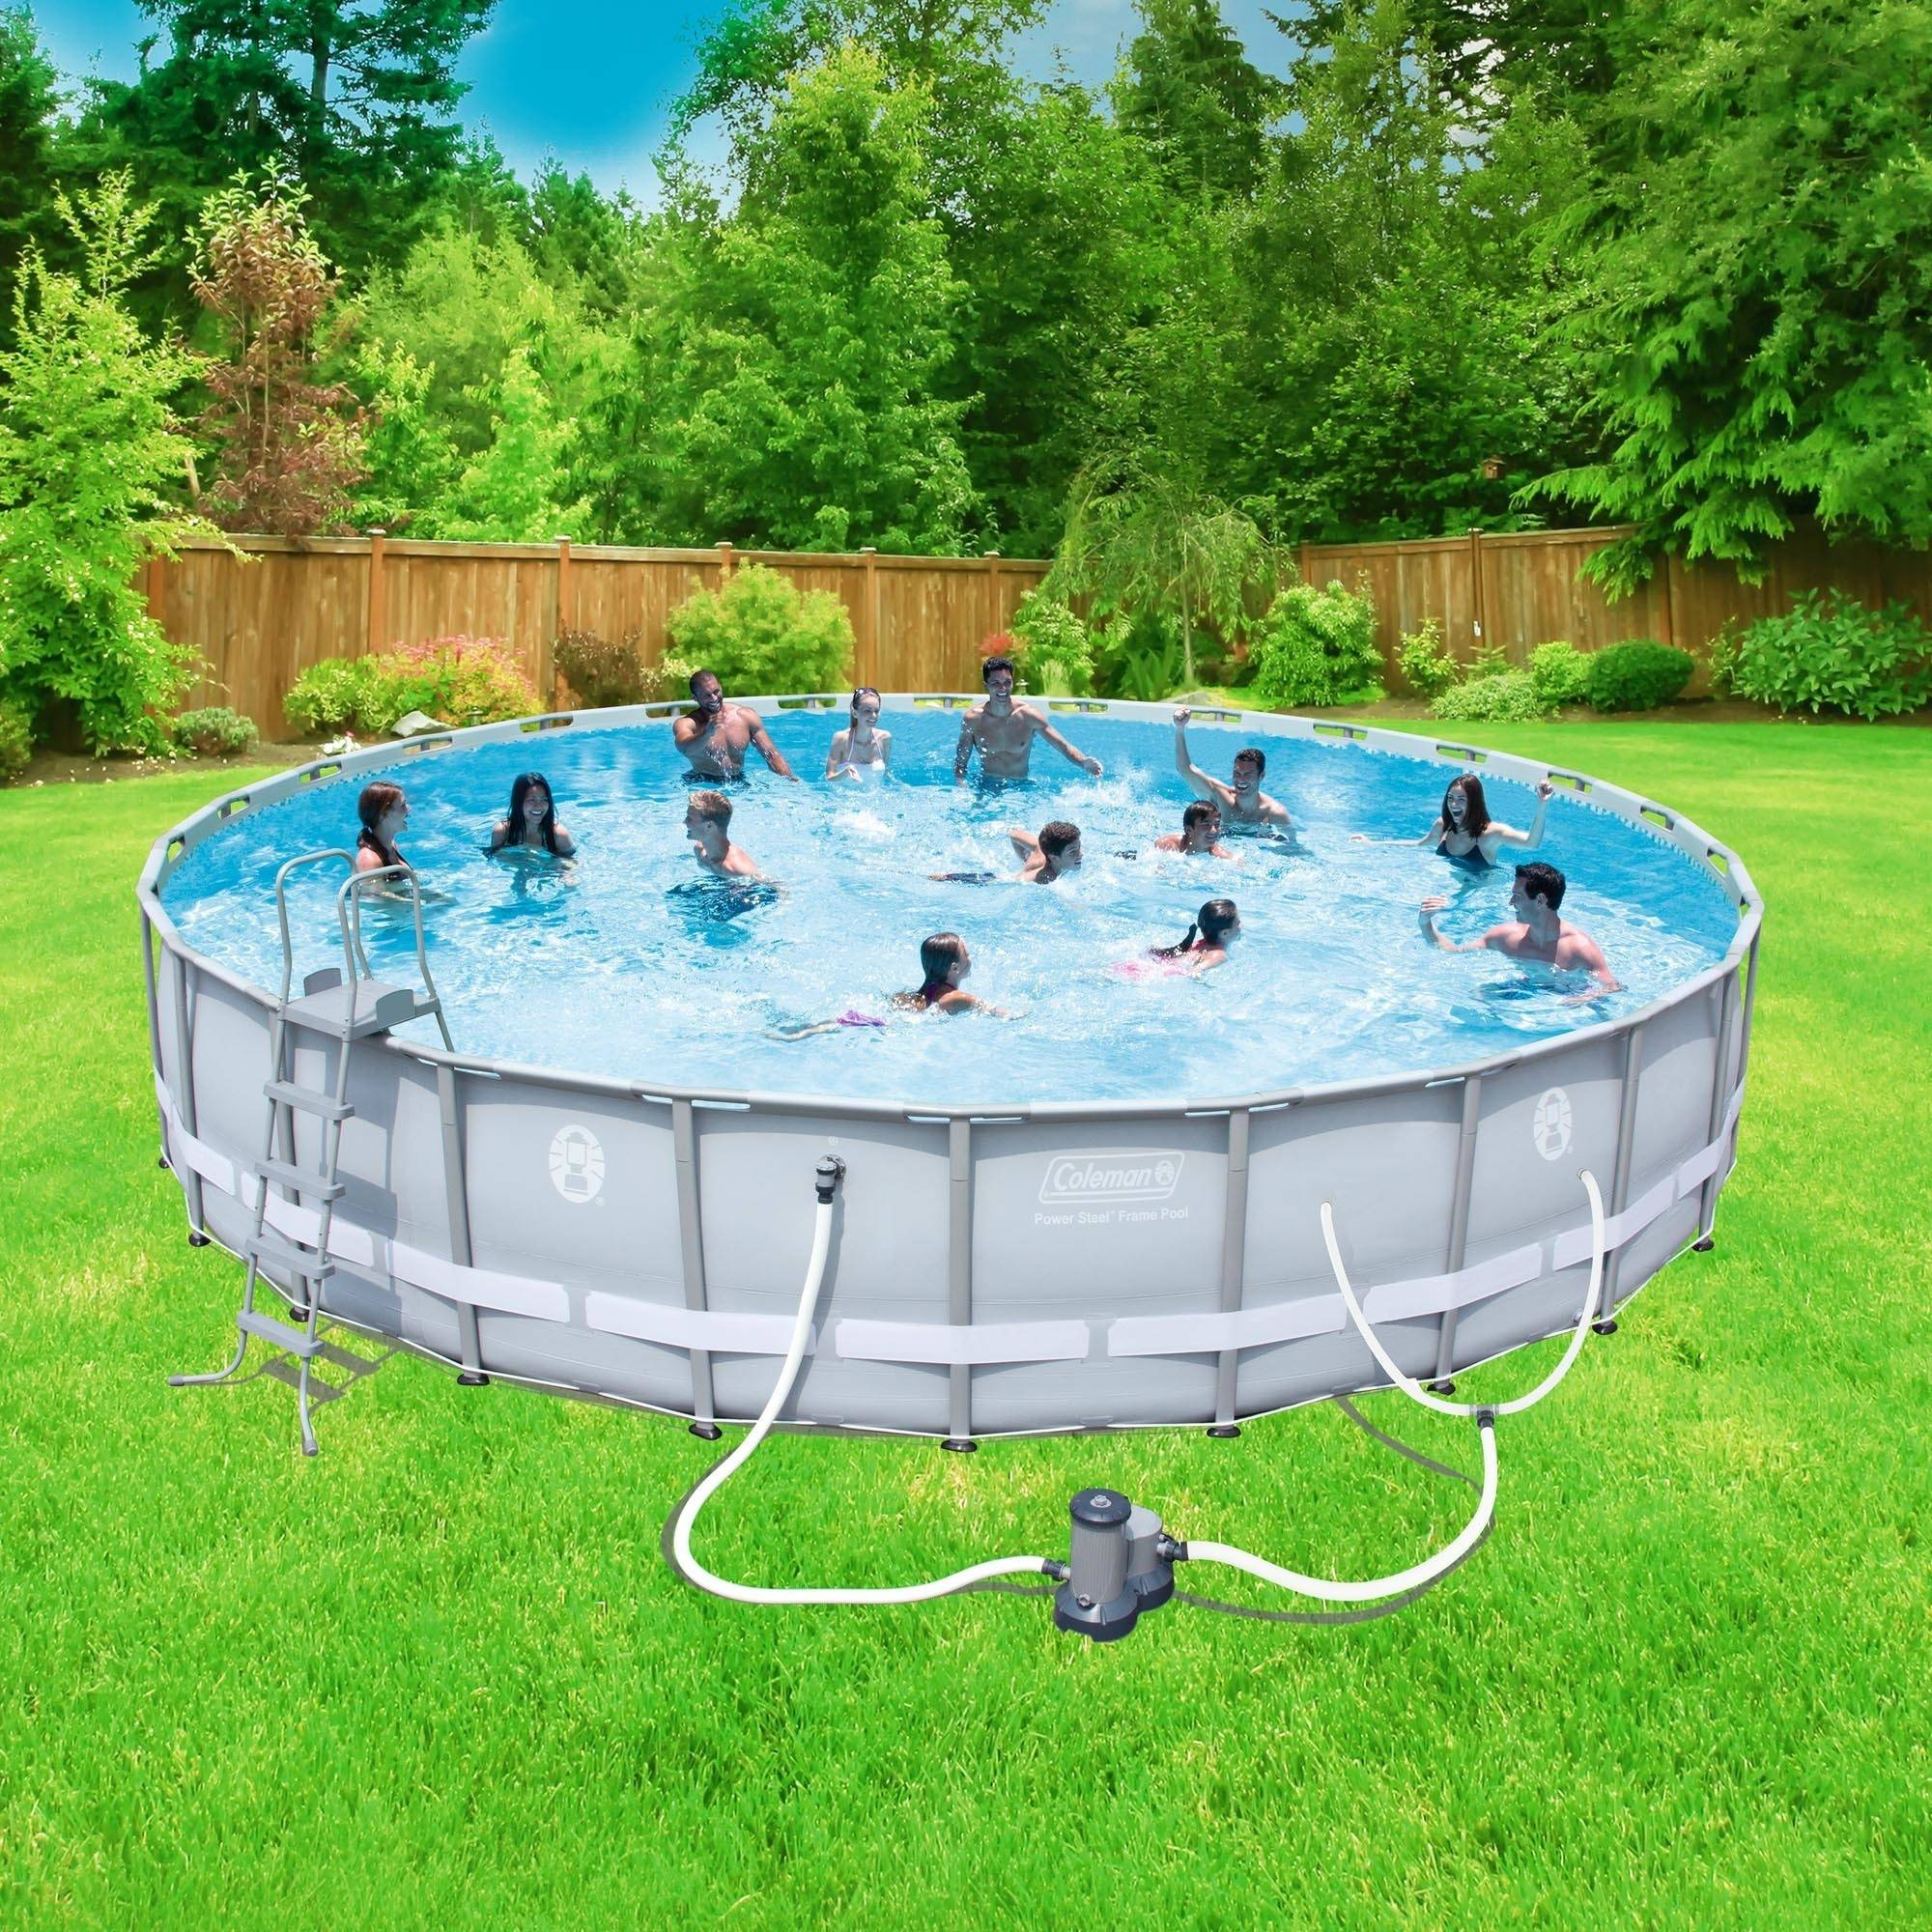 "Coleman Power Steel 26 x 52"" Frame Swimming Pool Set Walmart"